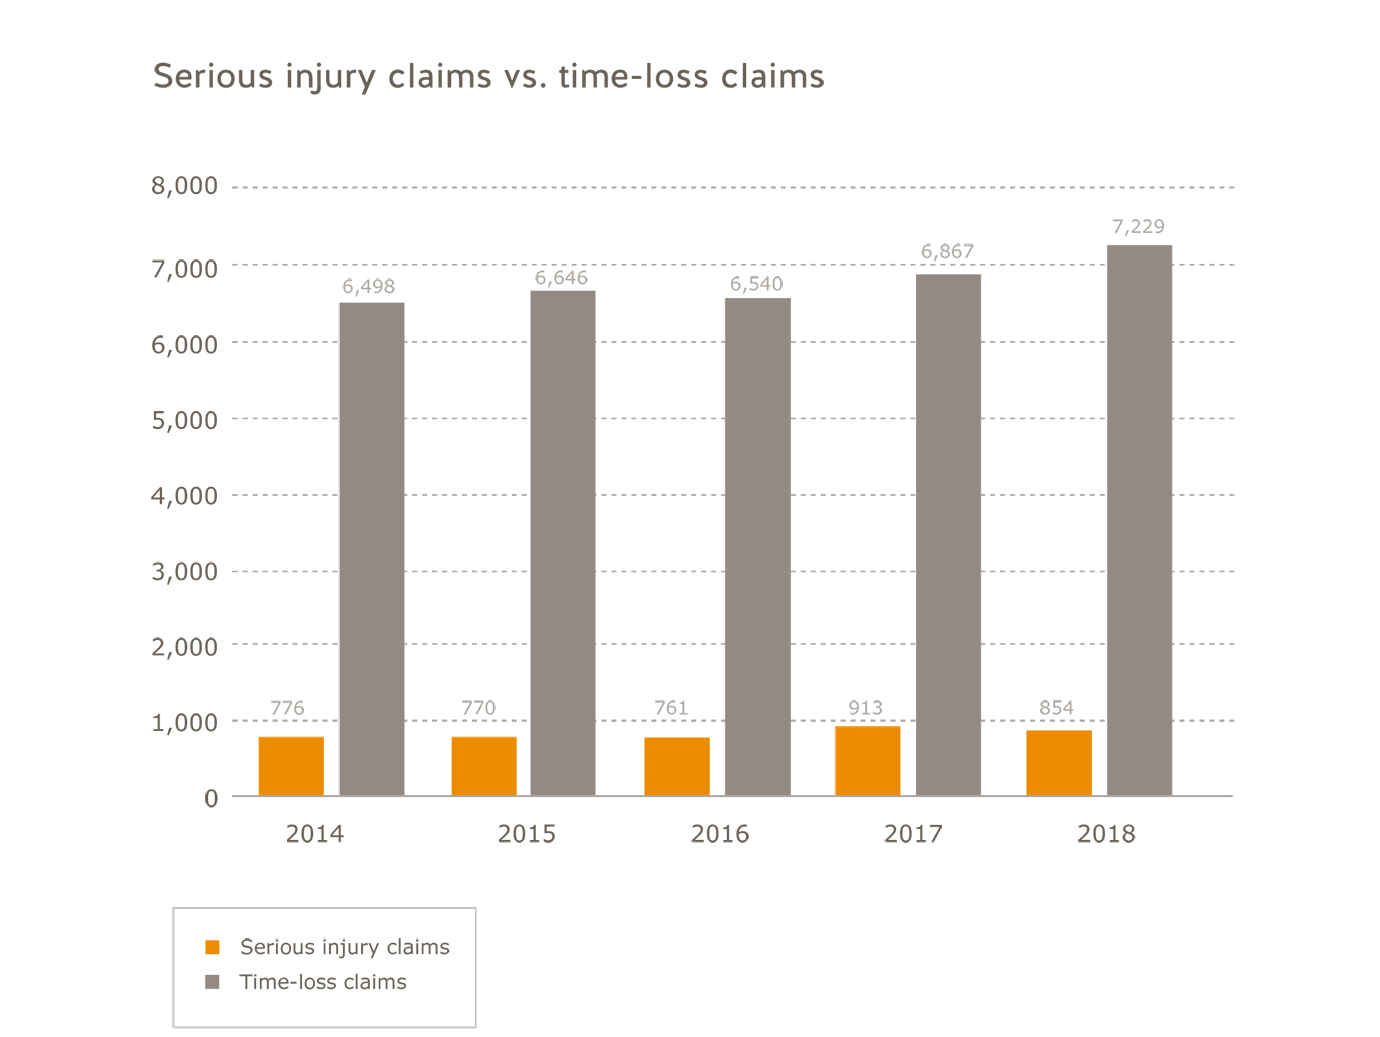 Young and new workers industry serious injury claims vs. time-loss claims for 2014 to 2018. Serious injury claims: 2014=776; 2015=770; 2016=761; 2017=913; 2018=854. Time-loss claims: 2014=6,498, 2015=6,646; 2016=6,540; 2017=6,867, 2018=7,229